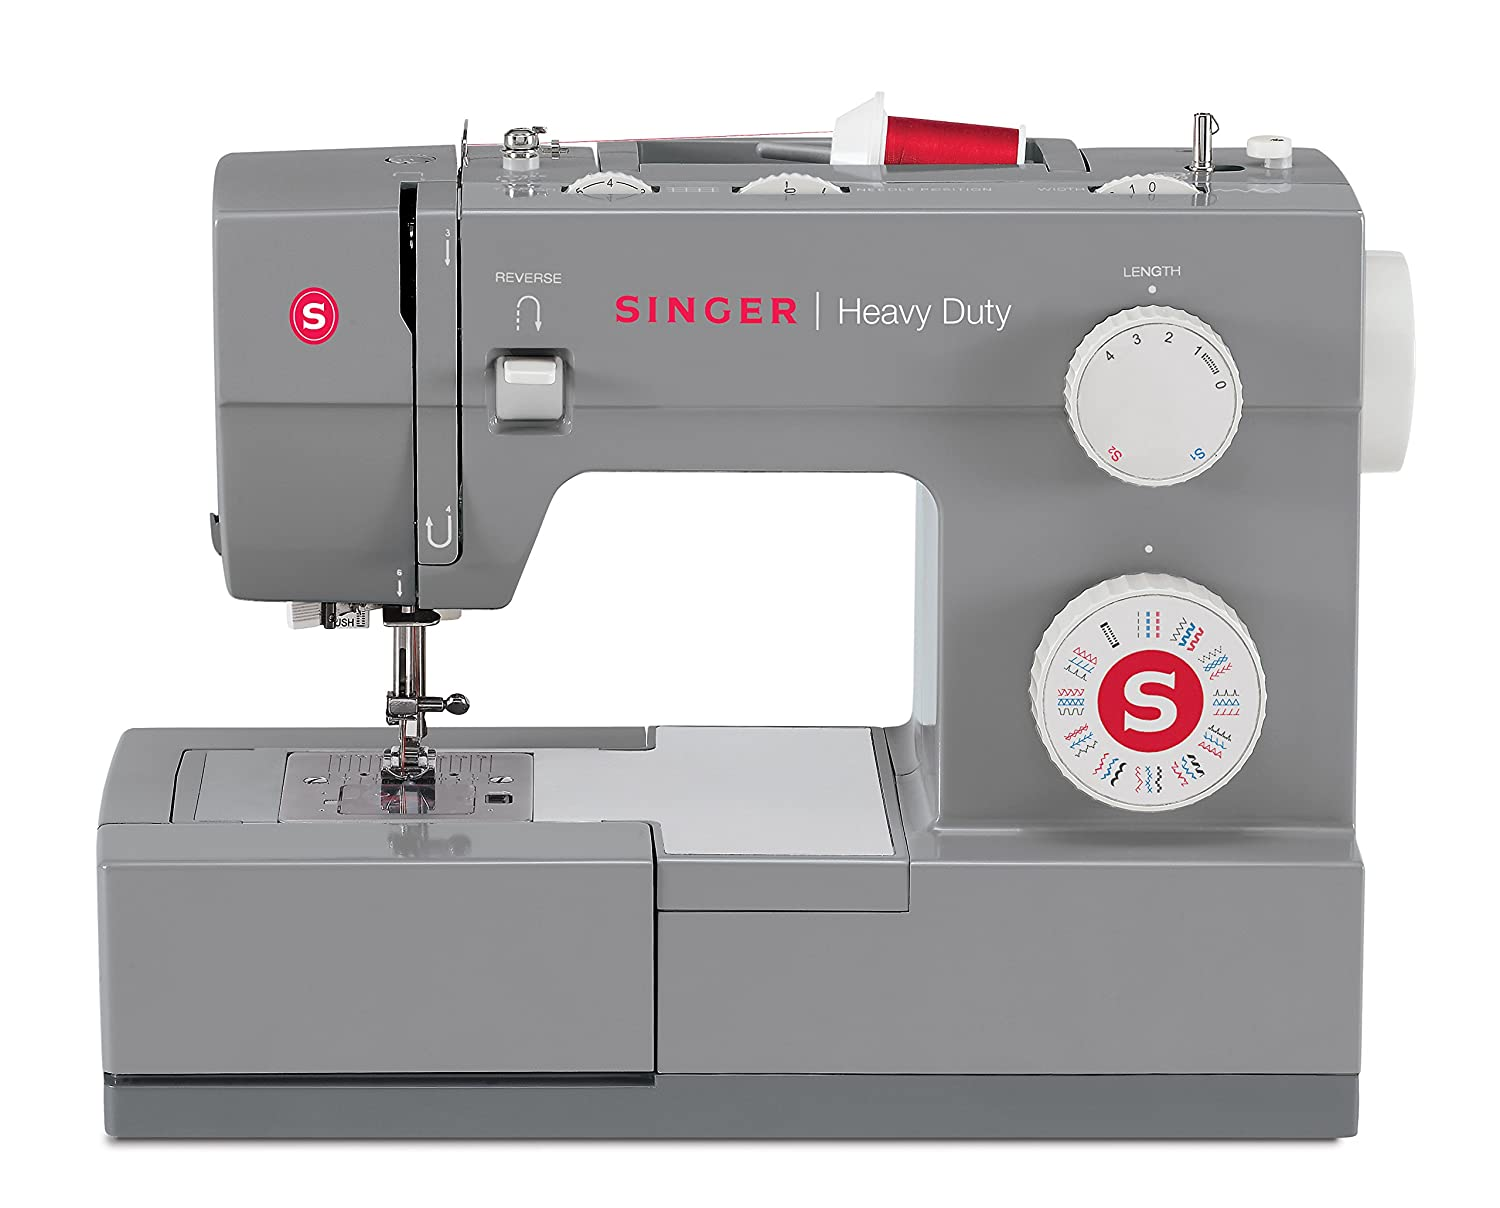 Top 9 Best Singer Sewing Machine Reviews in 2019 4